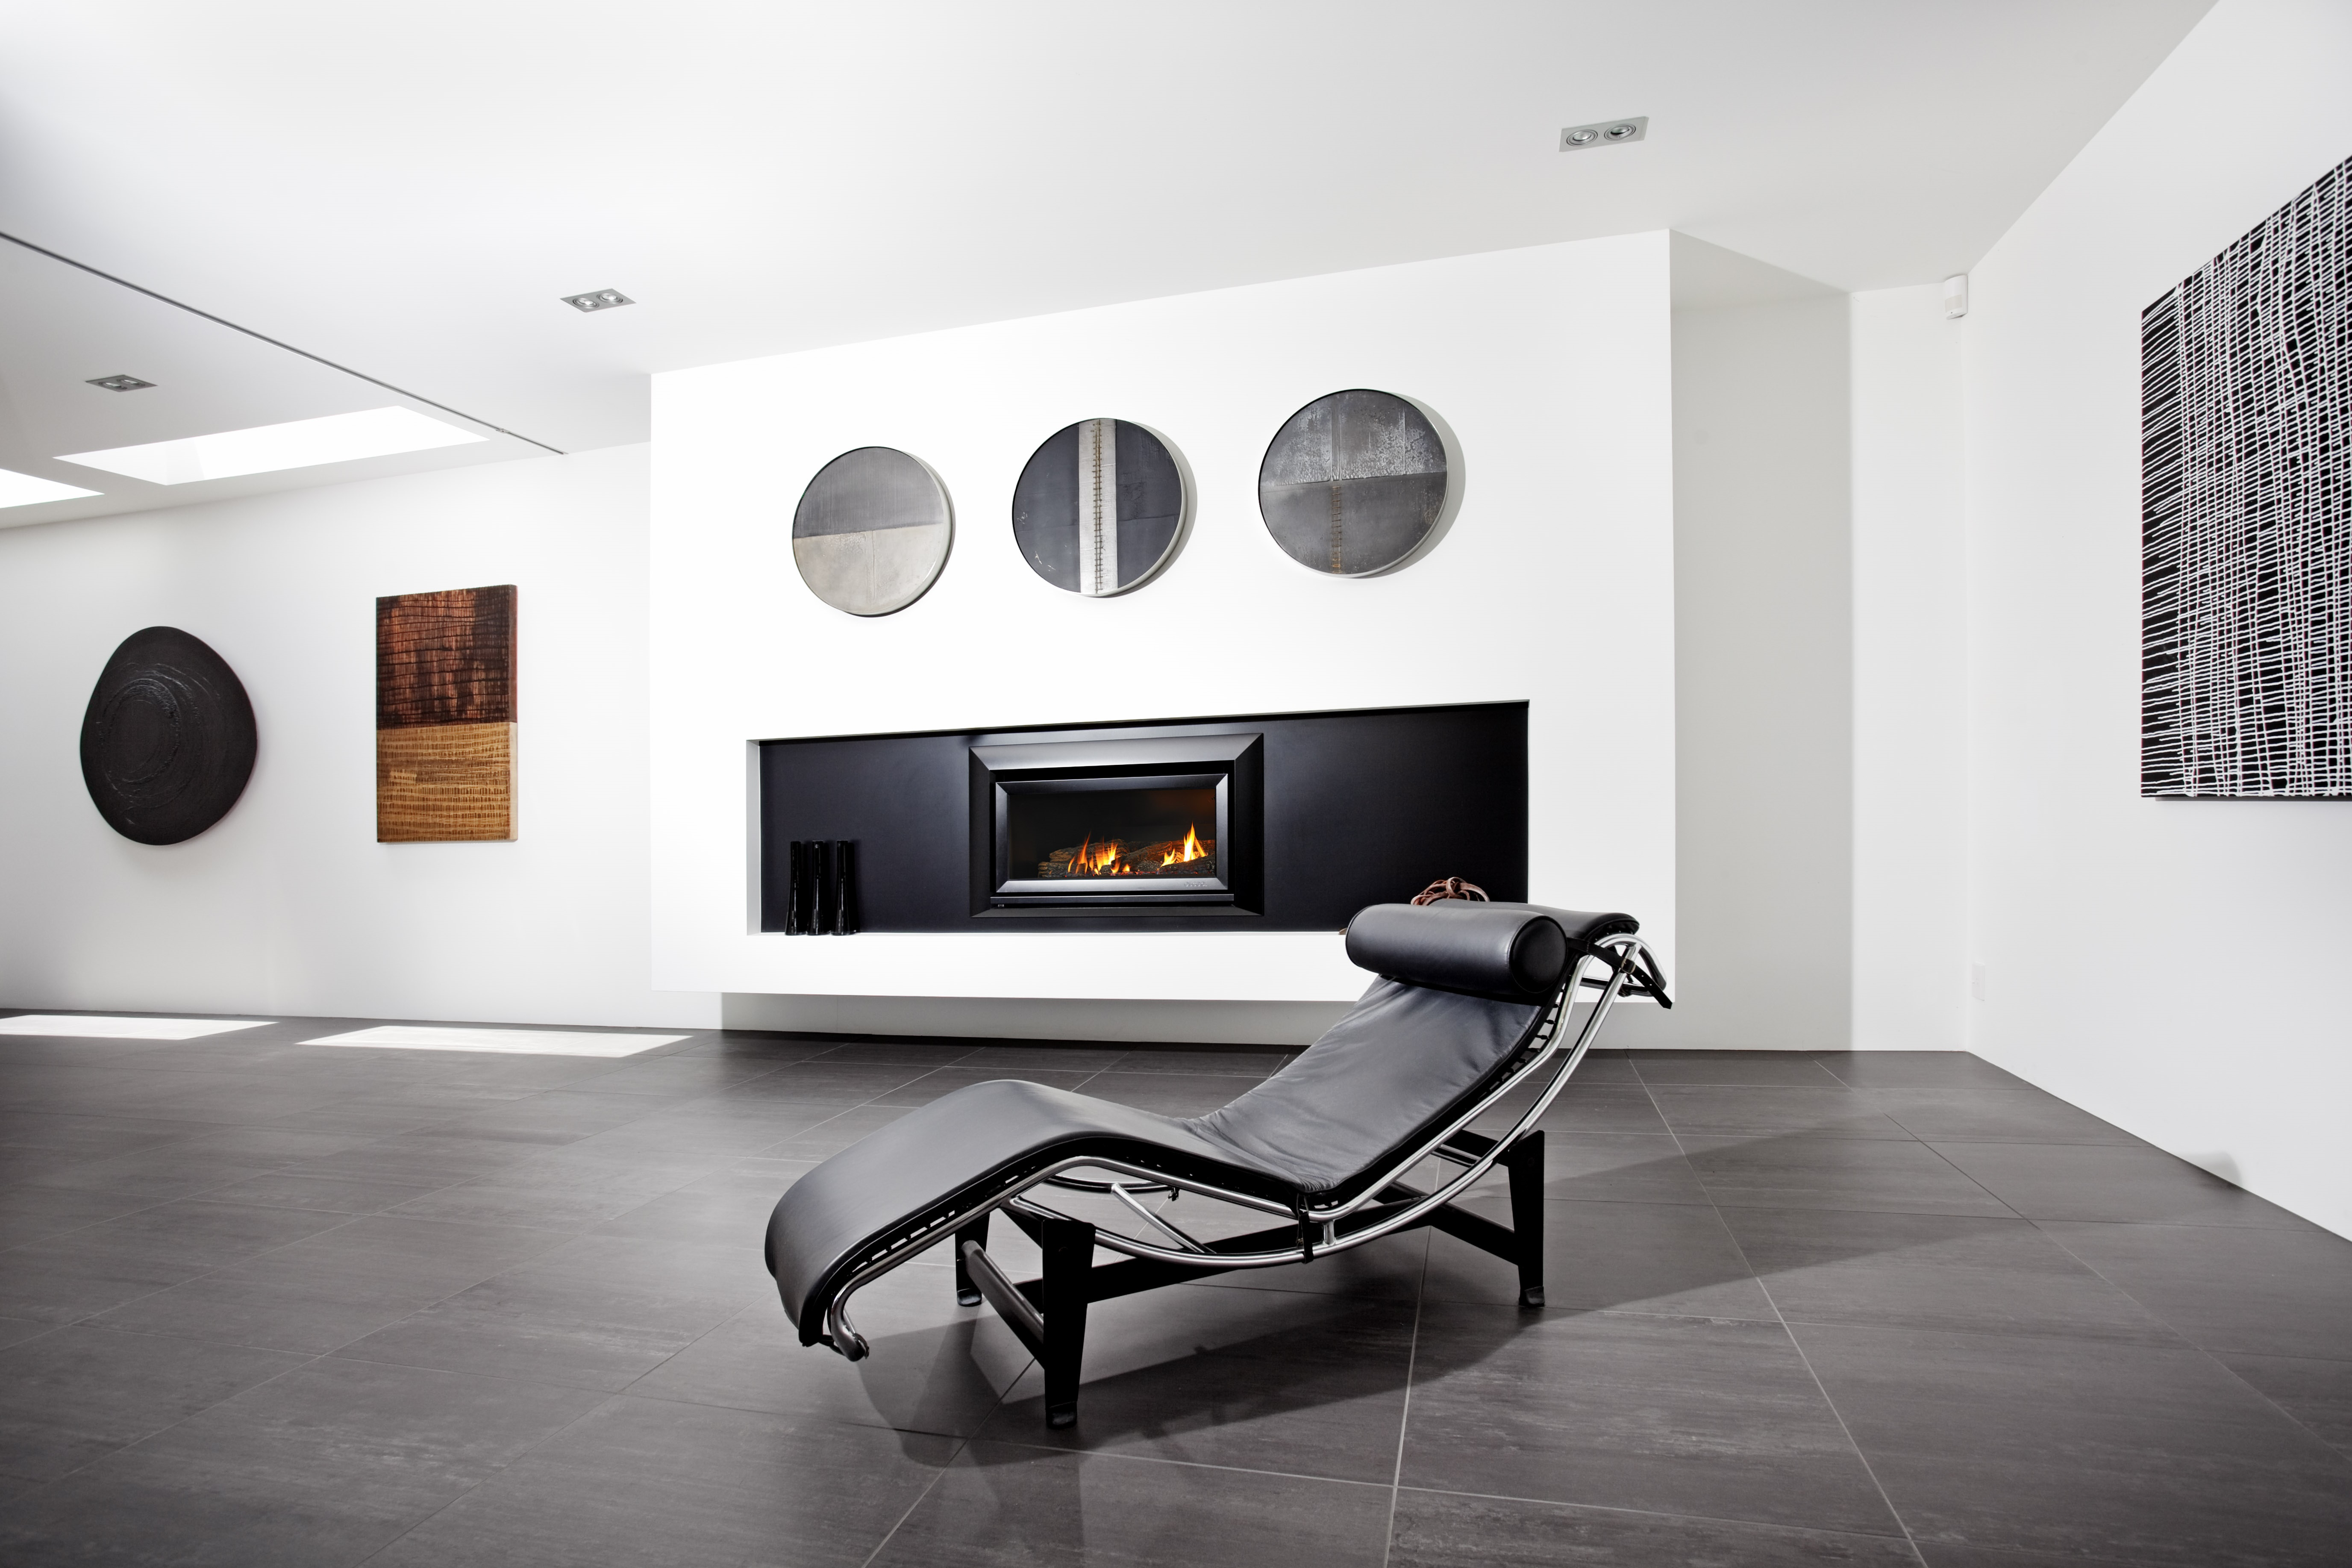 Efficiency of gas fireplace - Efficiency Of Gas Fireplace 38